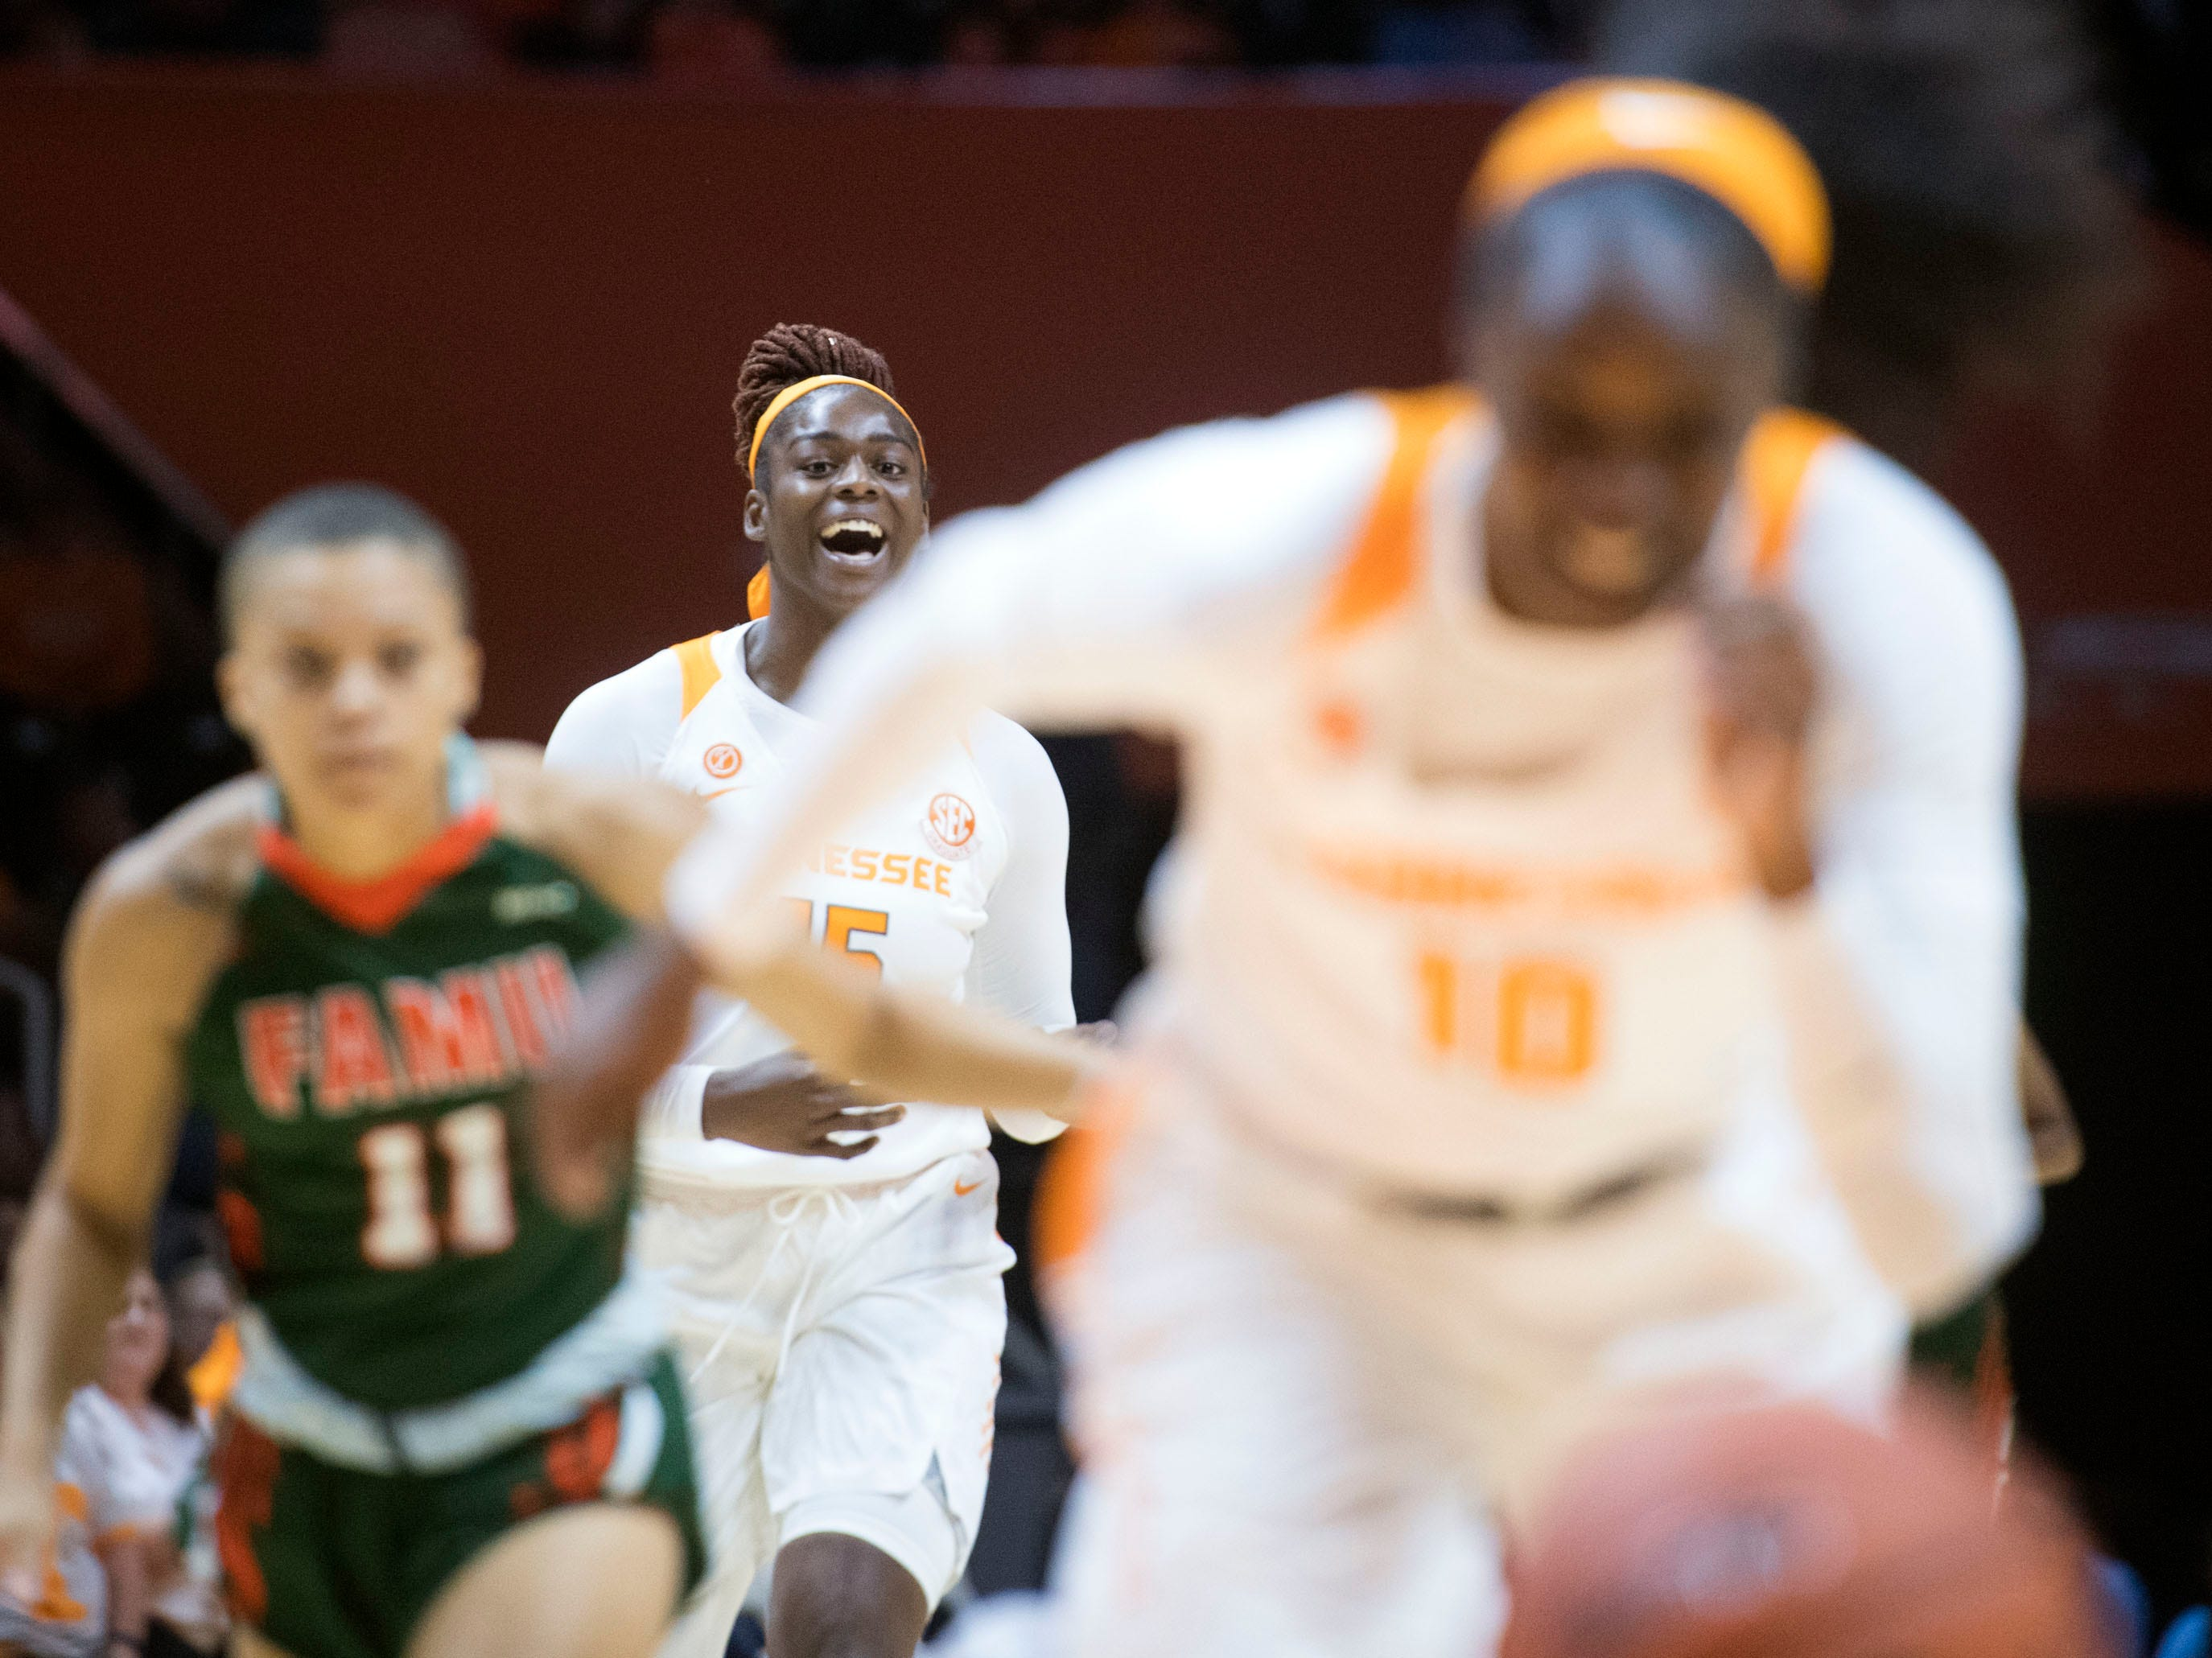 Tennessee's Cheridene Green (15) cheers on Meme Jackson (10) as she scrambles for the ball during the game against Florida A&M on Sunday, November 18, 2018.